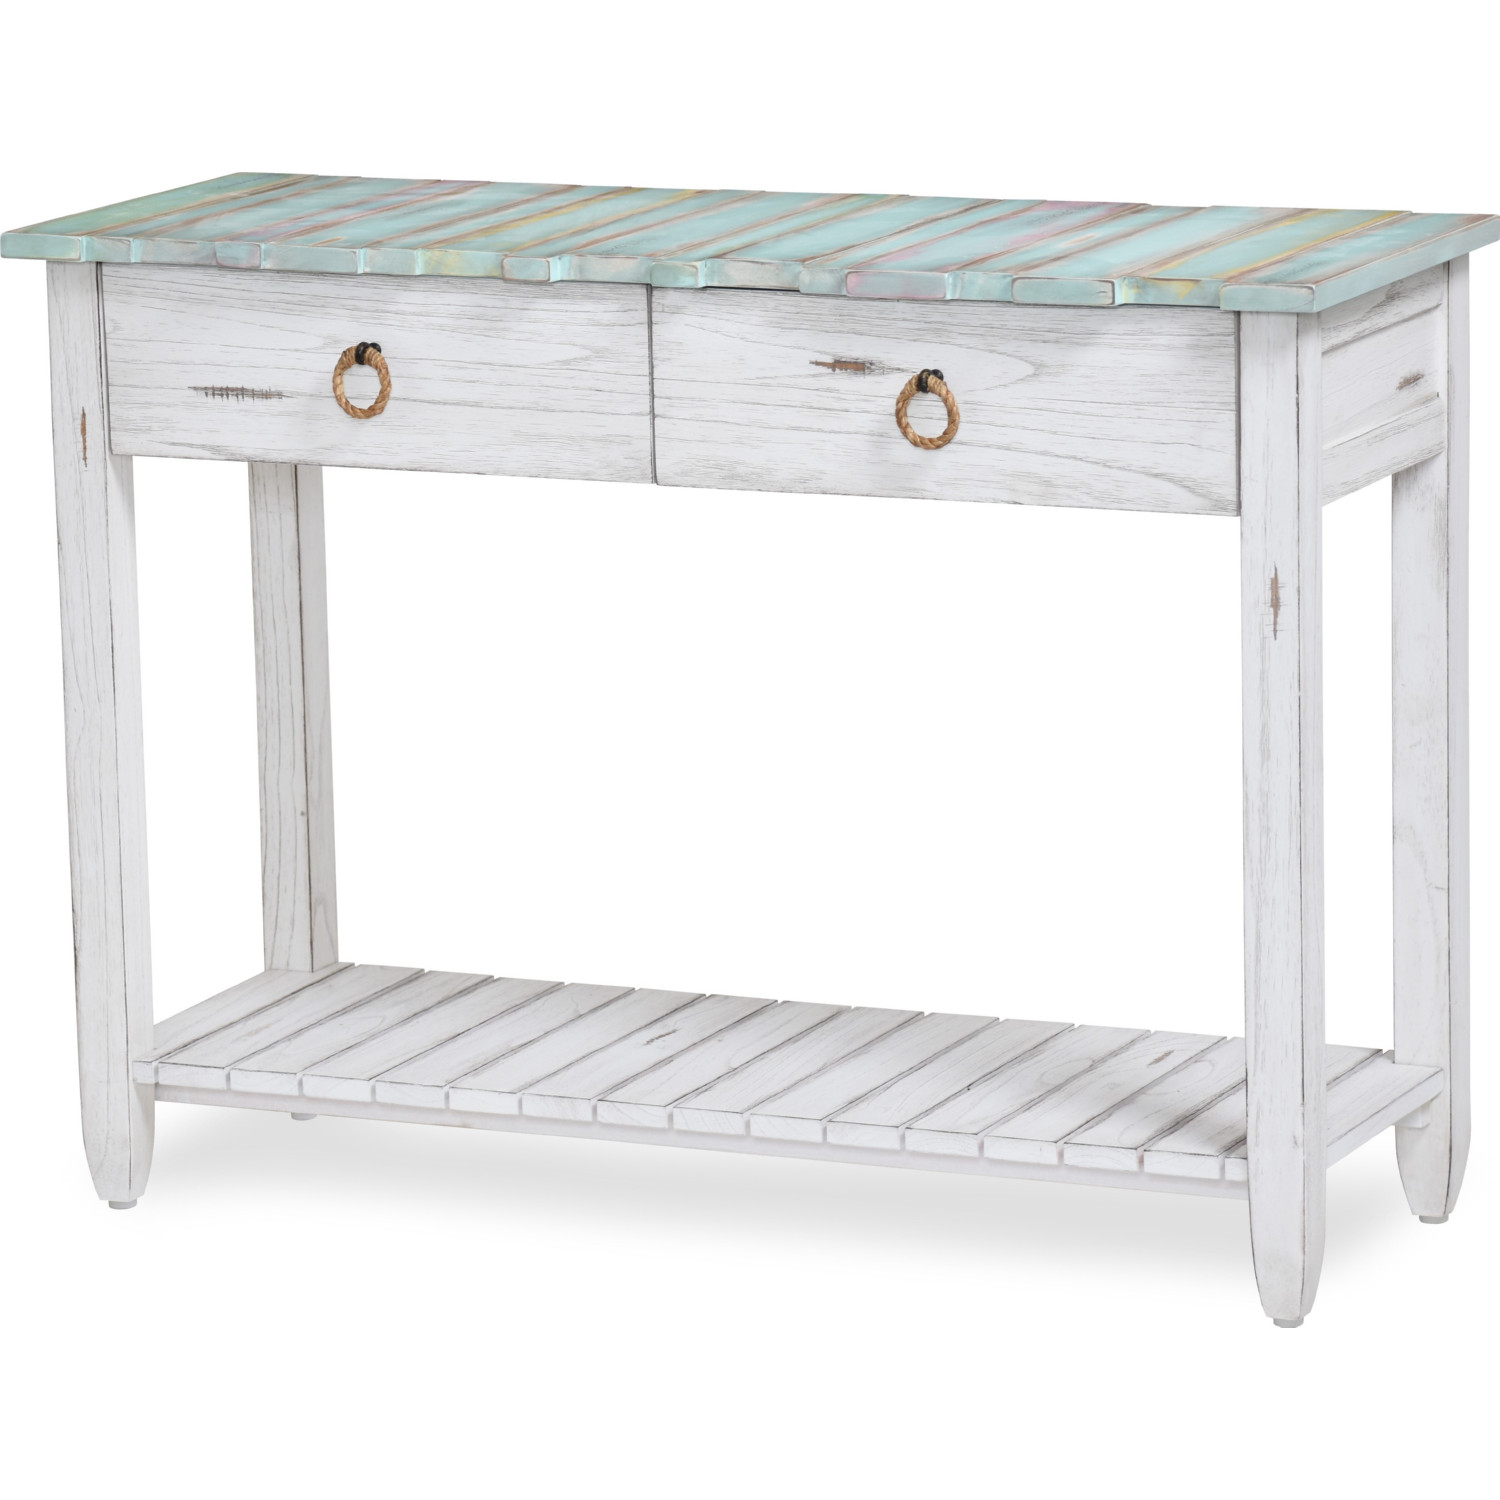 Picket Fence Console Table In Distressed Blue White By Sea Winds